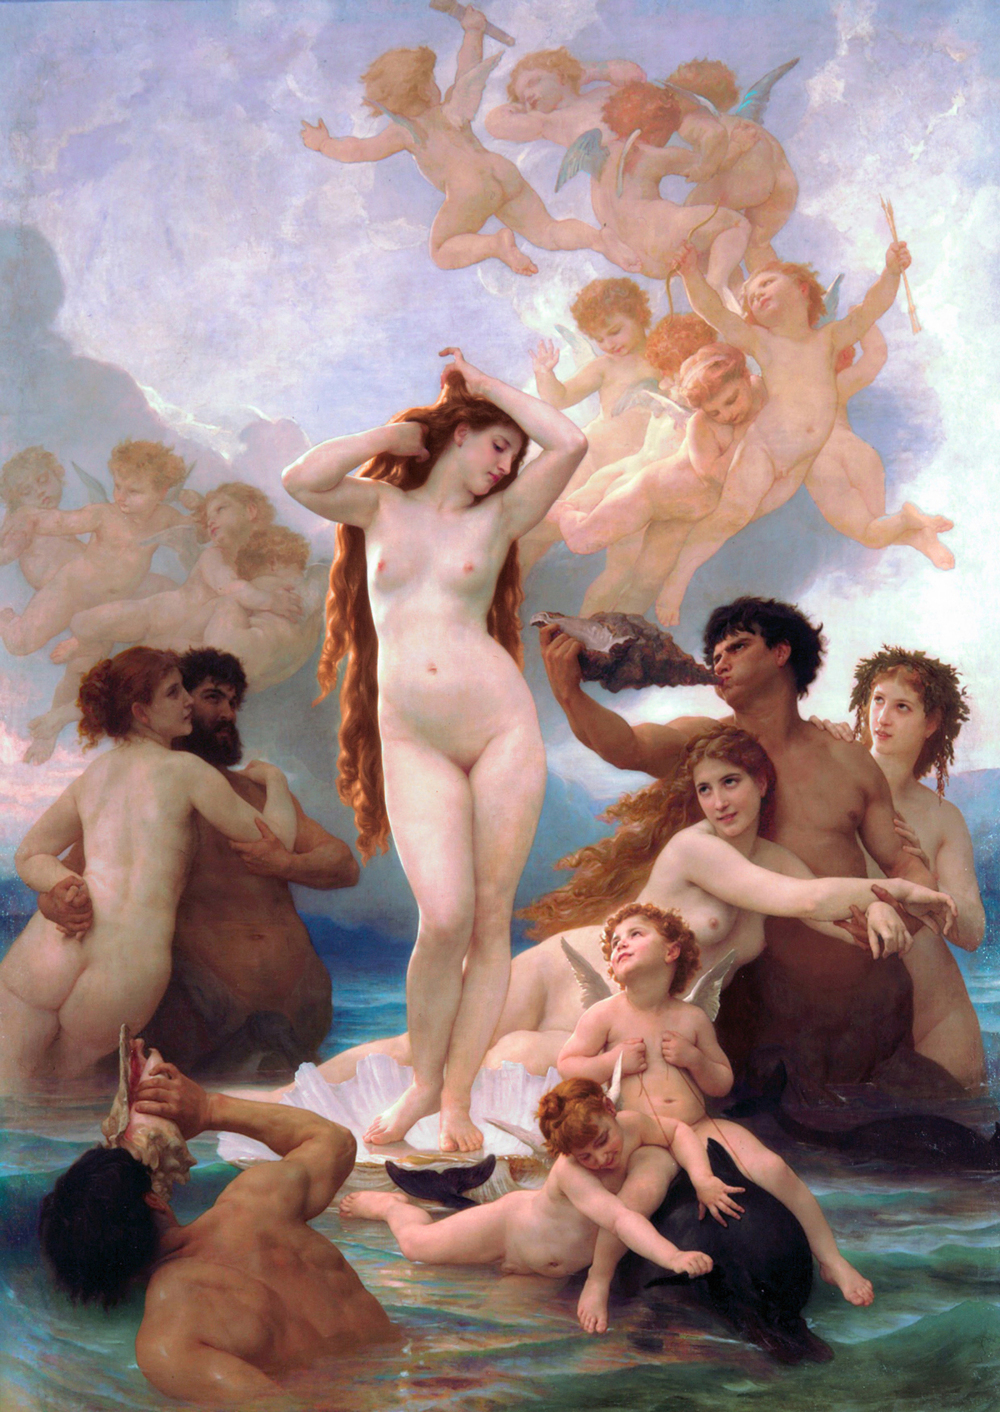 Adolphe-William Bouguereau,  The Birth of Venus,  Oil on Canvas, 1879